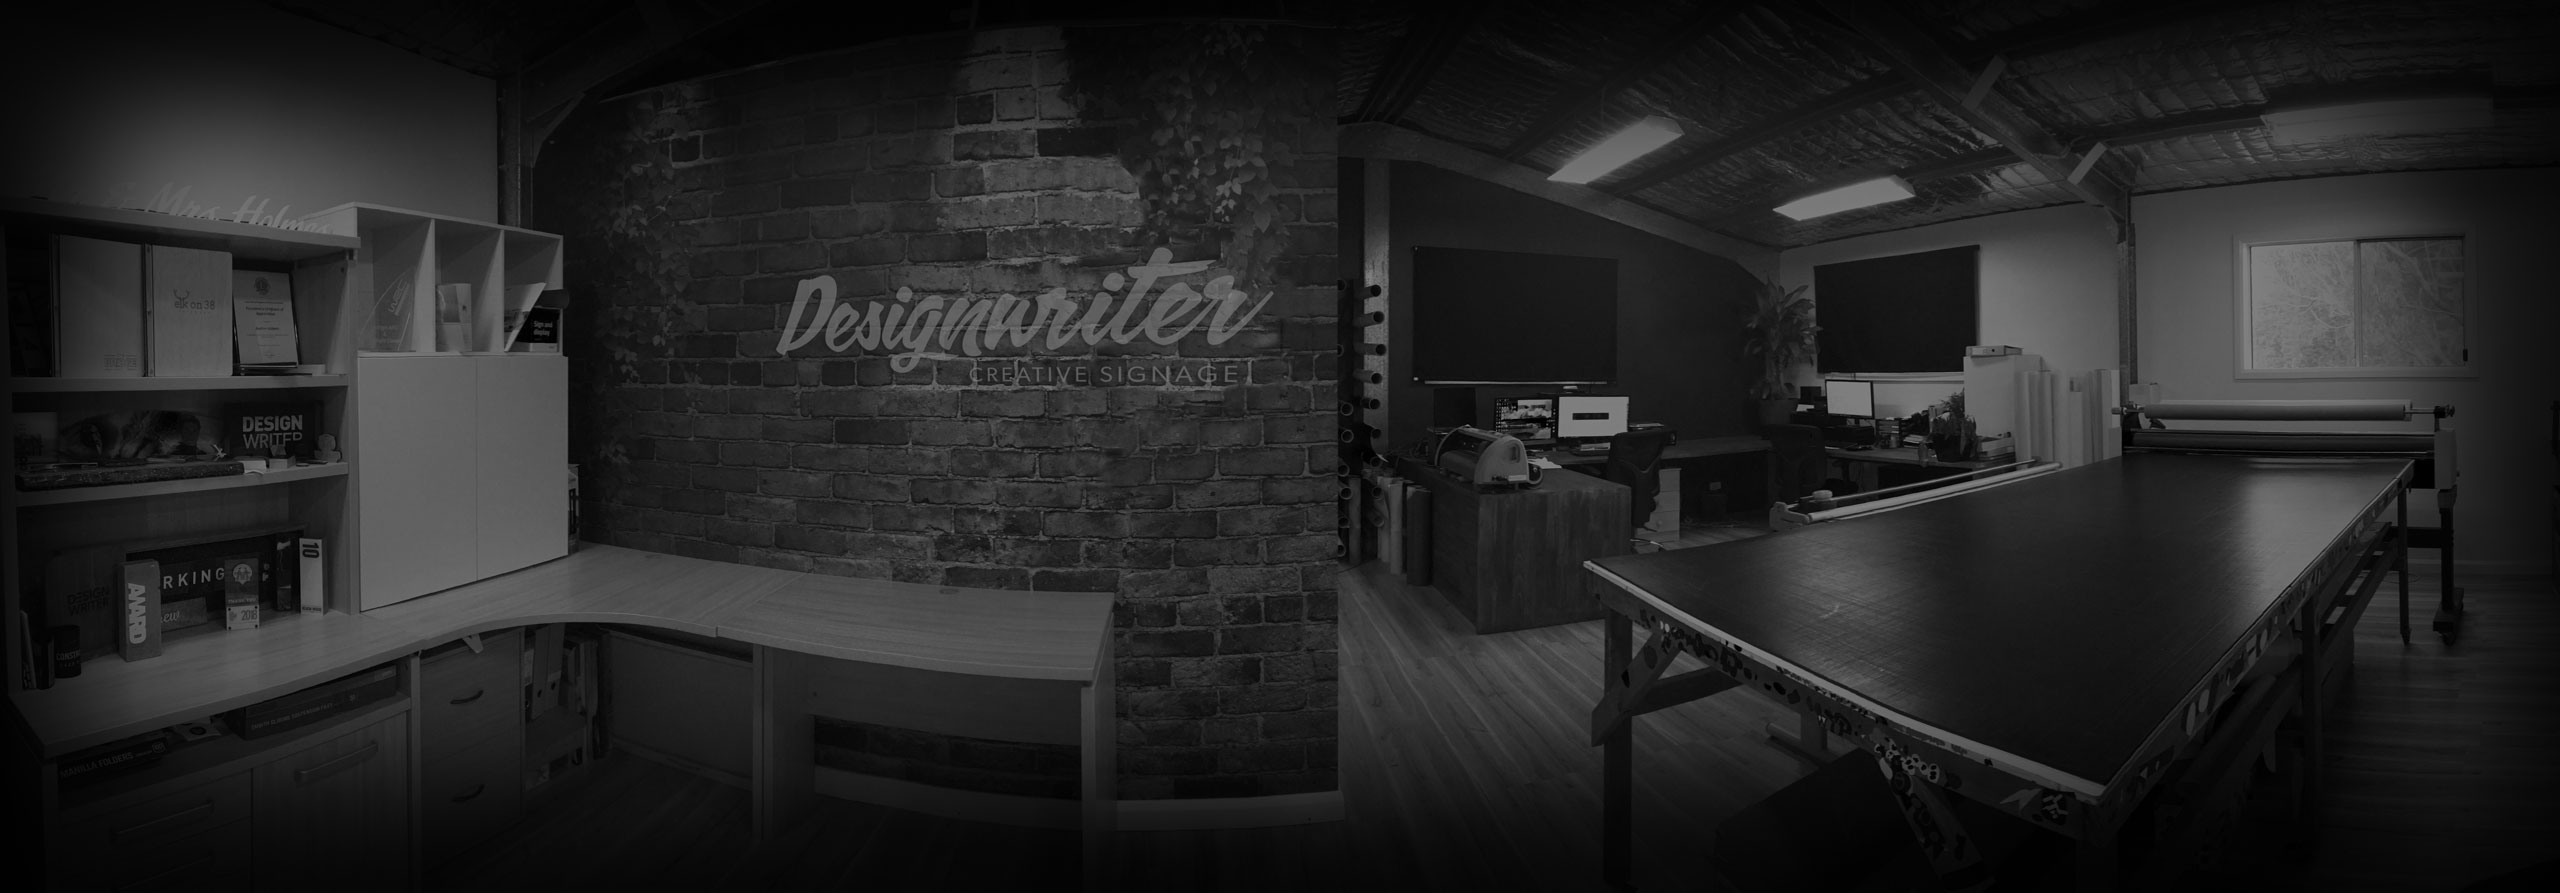 Design Writer Office Banner Image